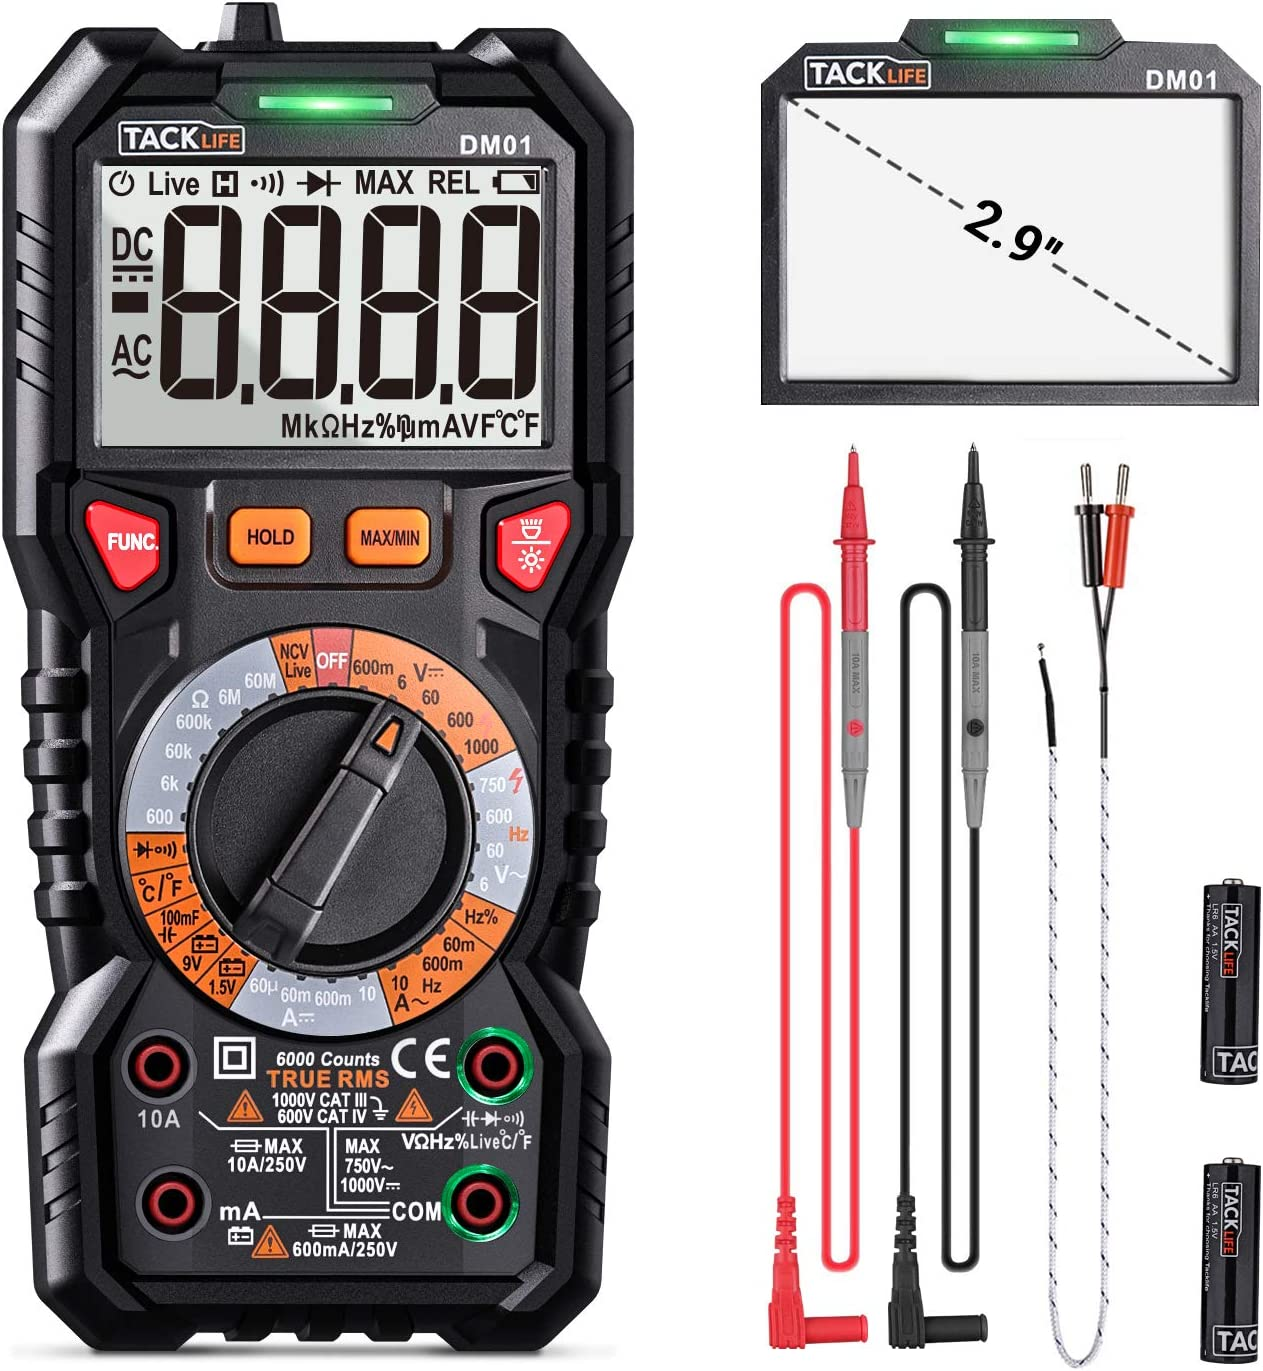 Digital Multimeter TRMS 6000 Counts LED Intelligent Indicator Jack Manul Ranging Measuring ACDC VoltageACDC CurrentResistanceCapacitanceFrequencyDutyD at Kapruka Online for specialGifts